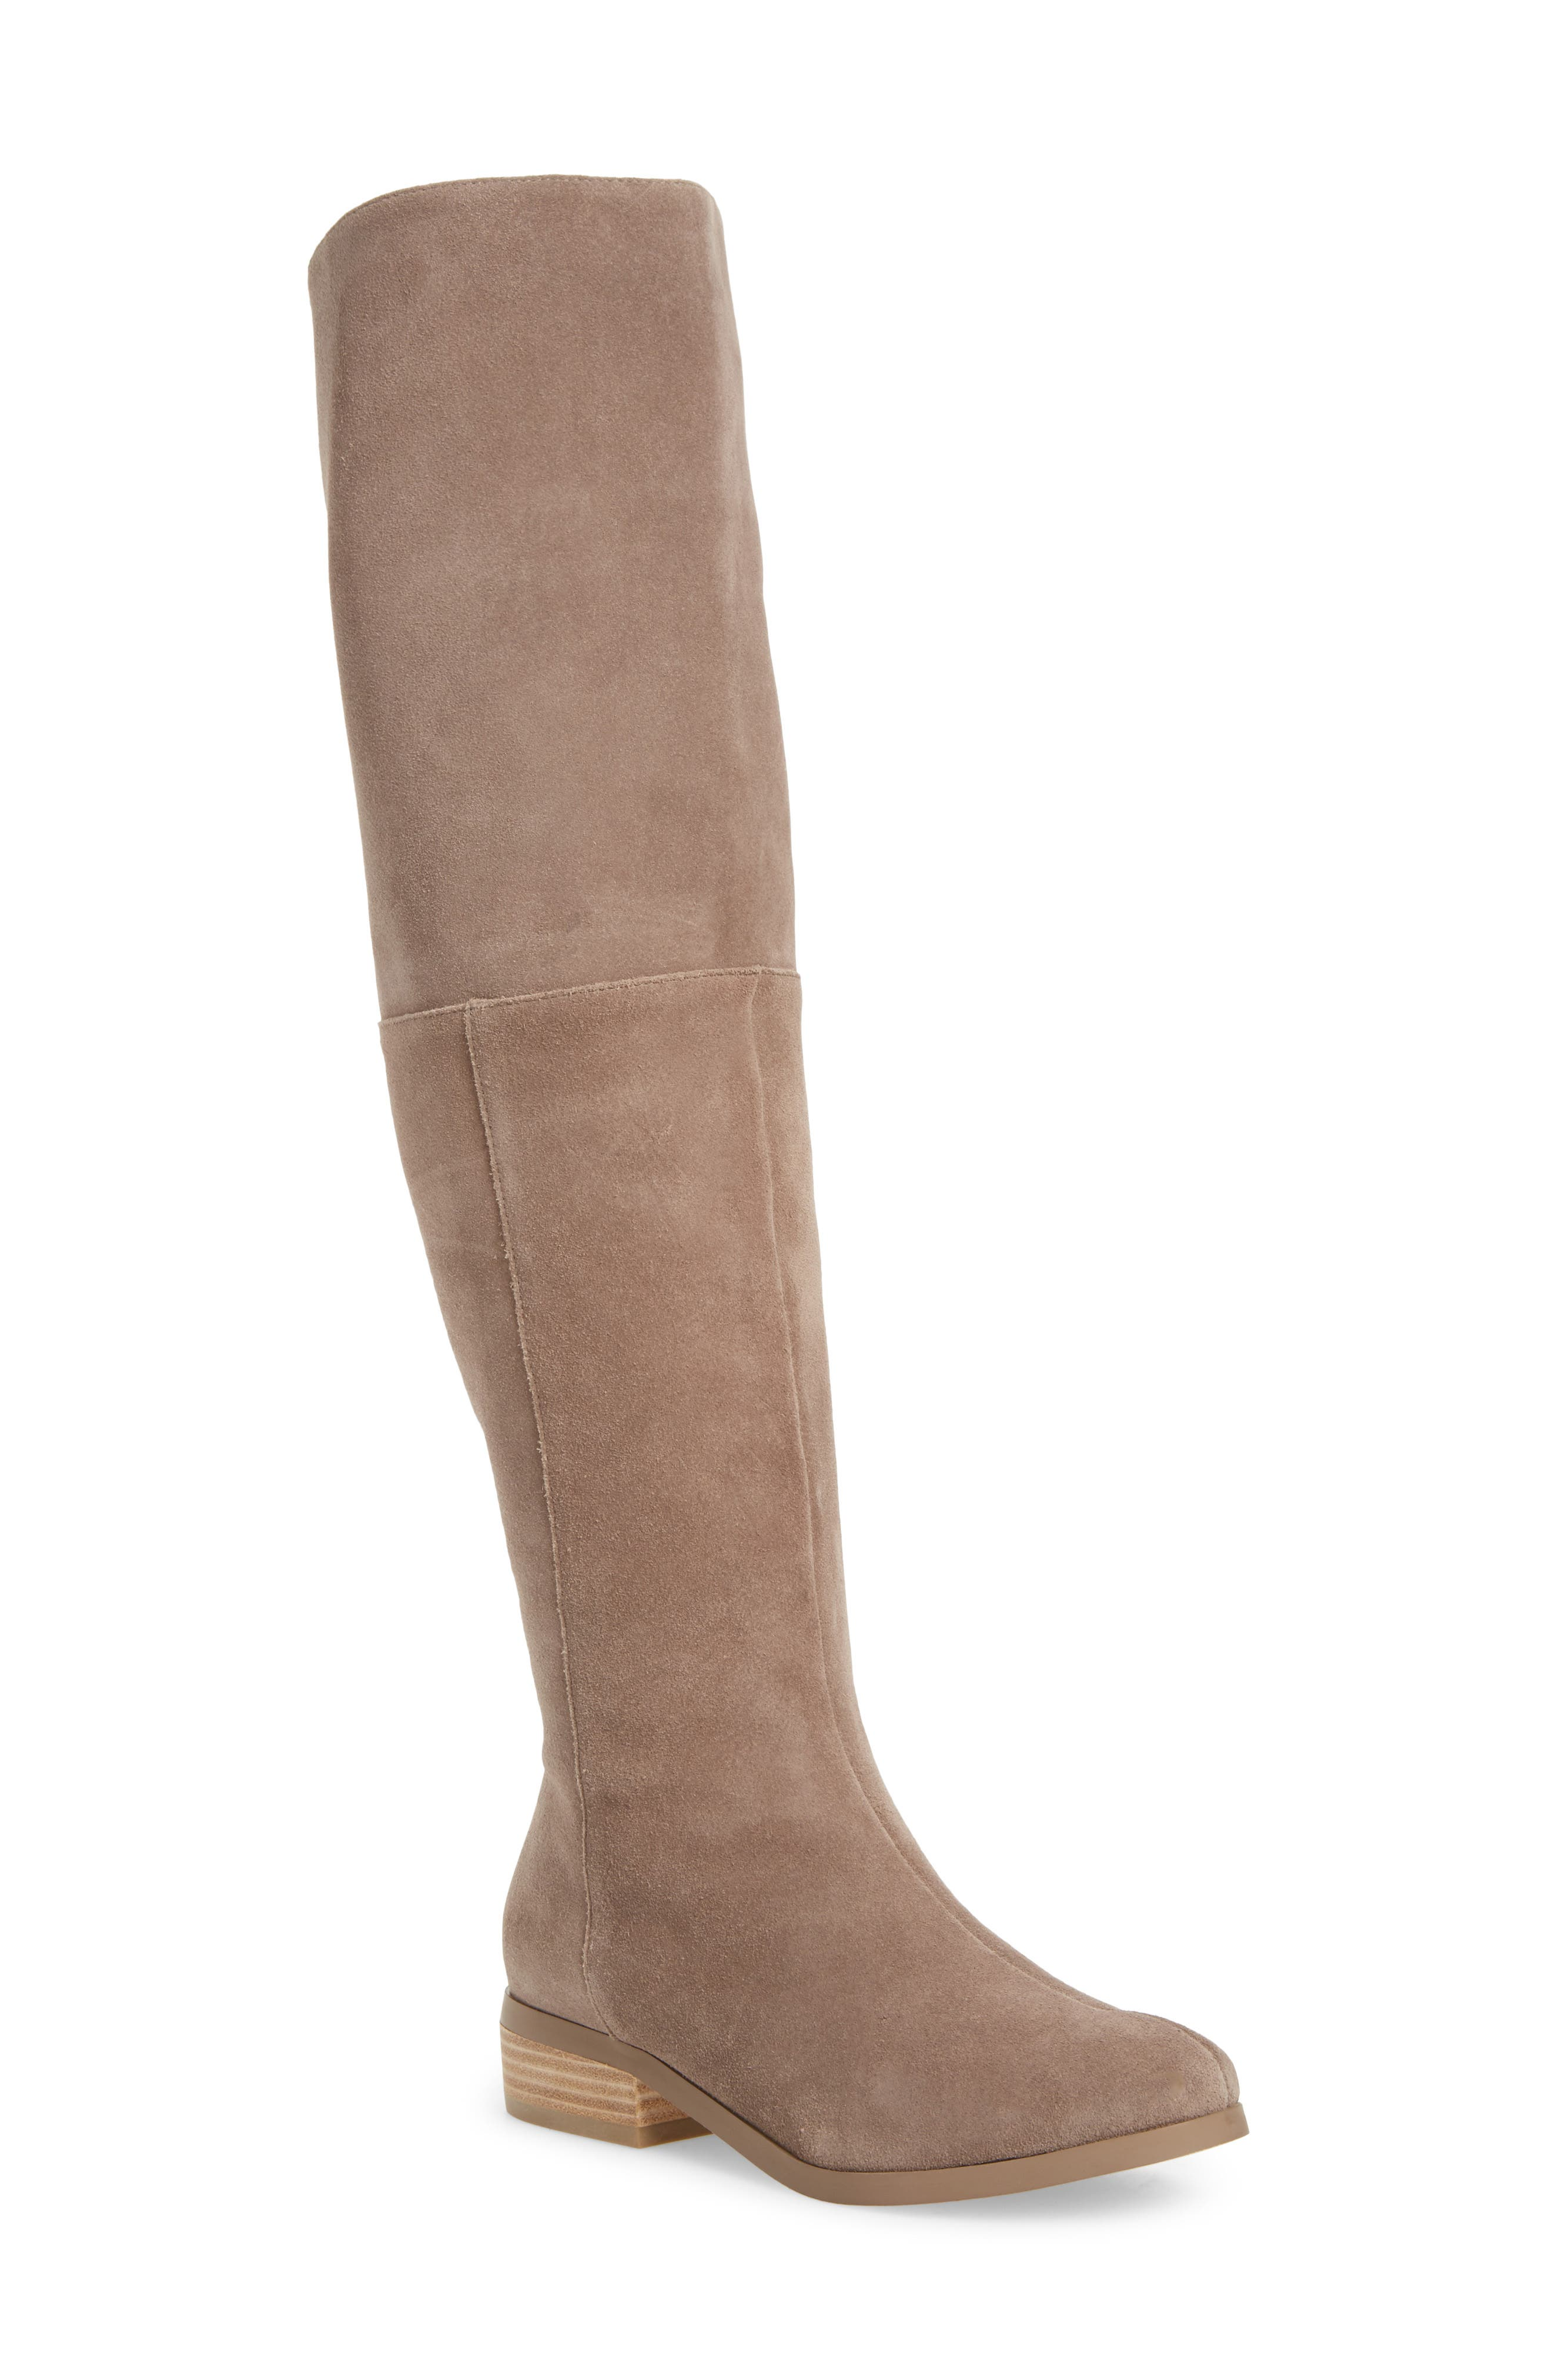 Sonoma Over the Knee Boot,                             Main thumbnail 1, color,                             030